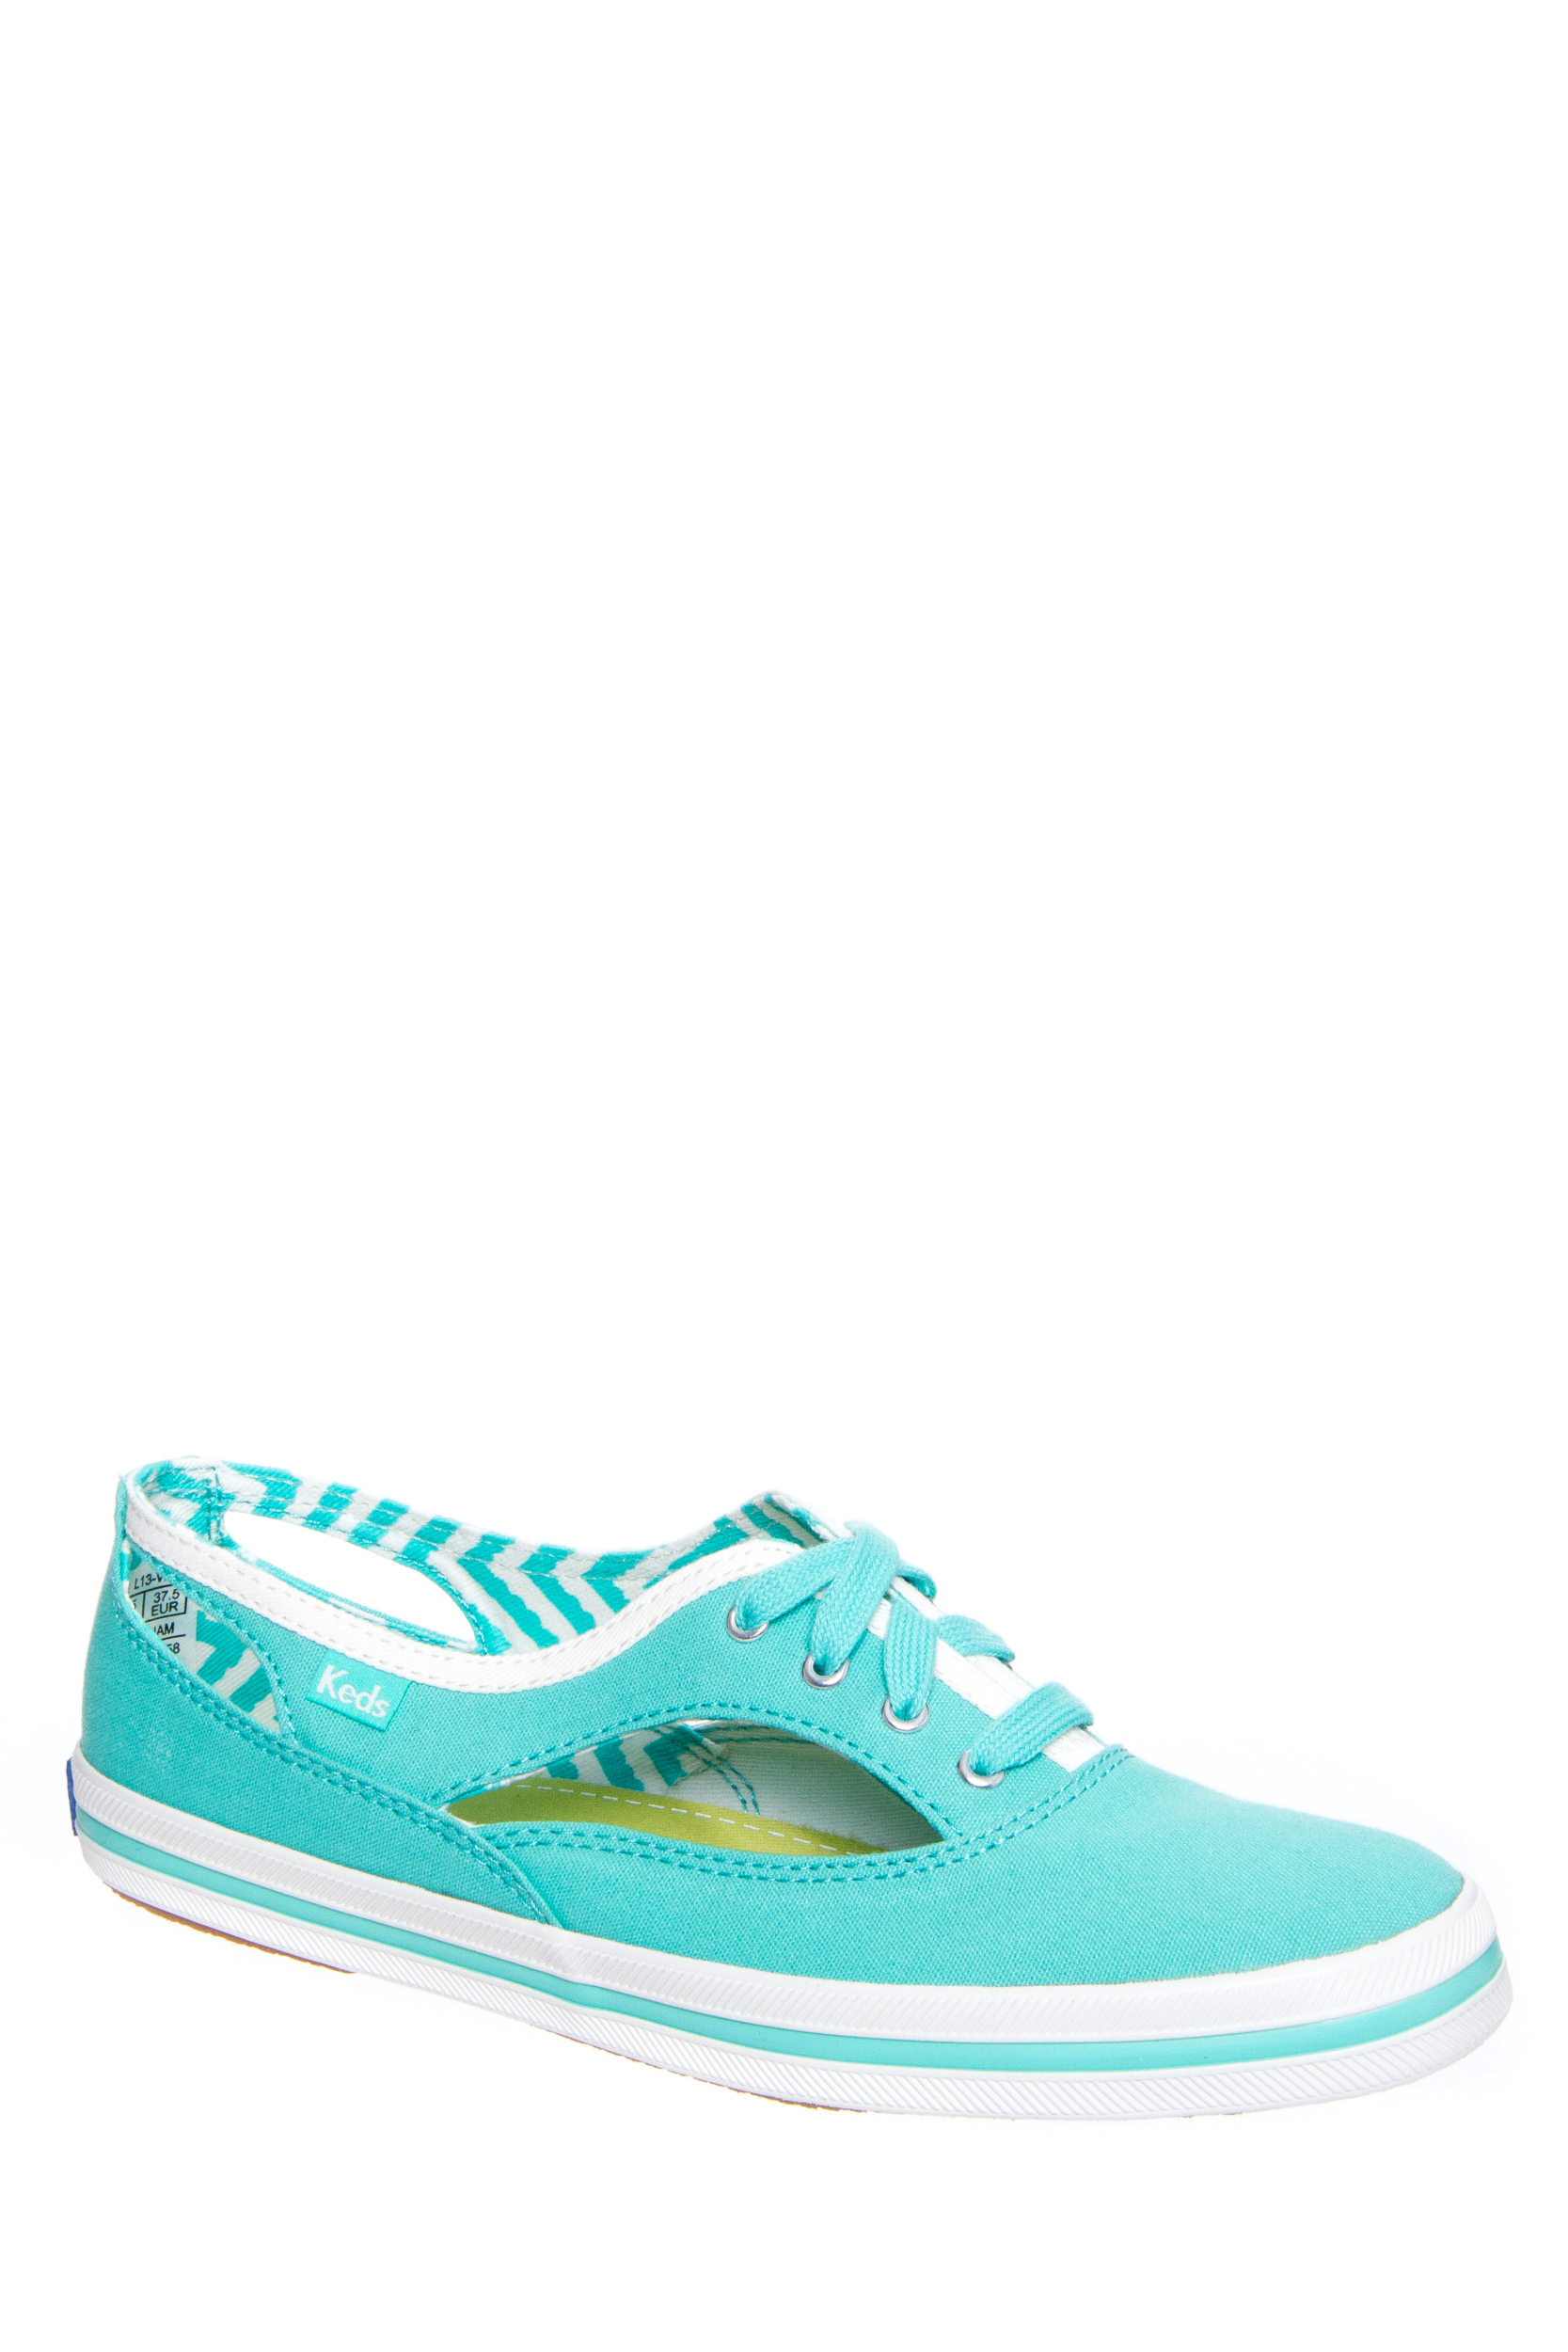 Keds Champion Cut-Out Low Top Sneakers